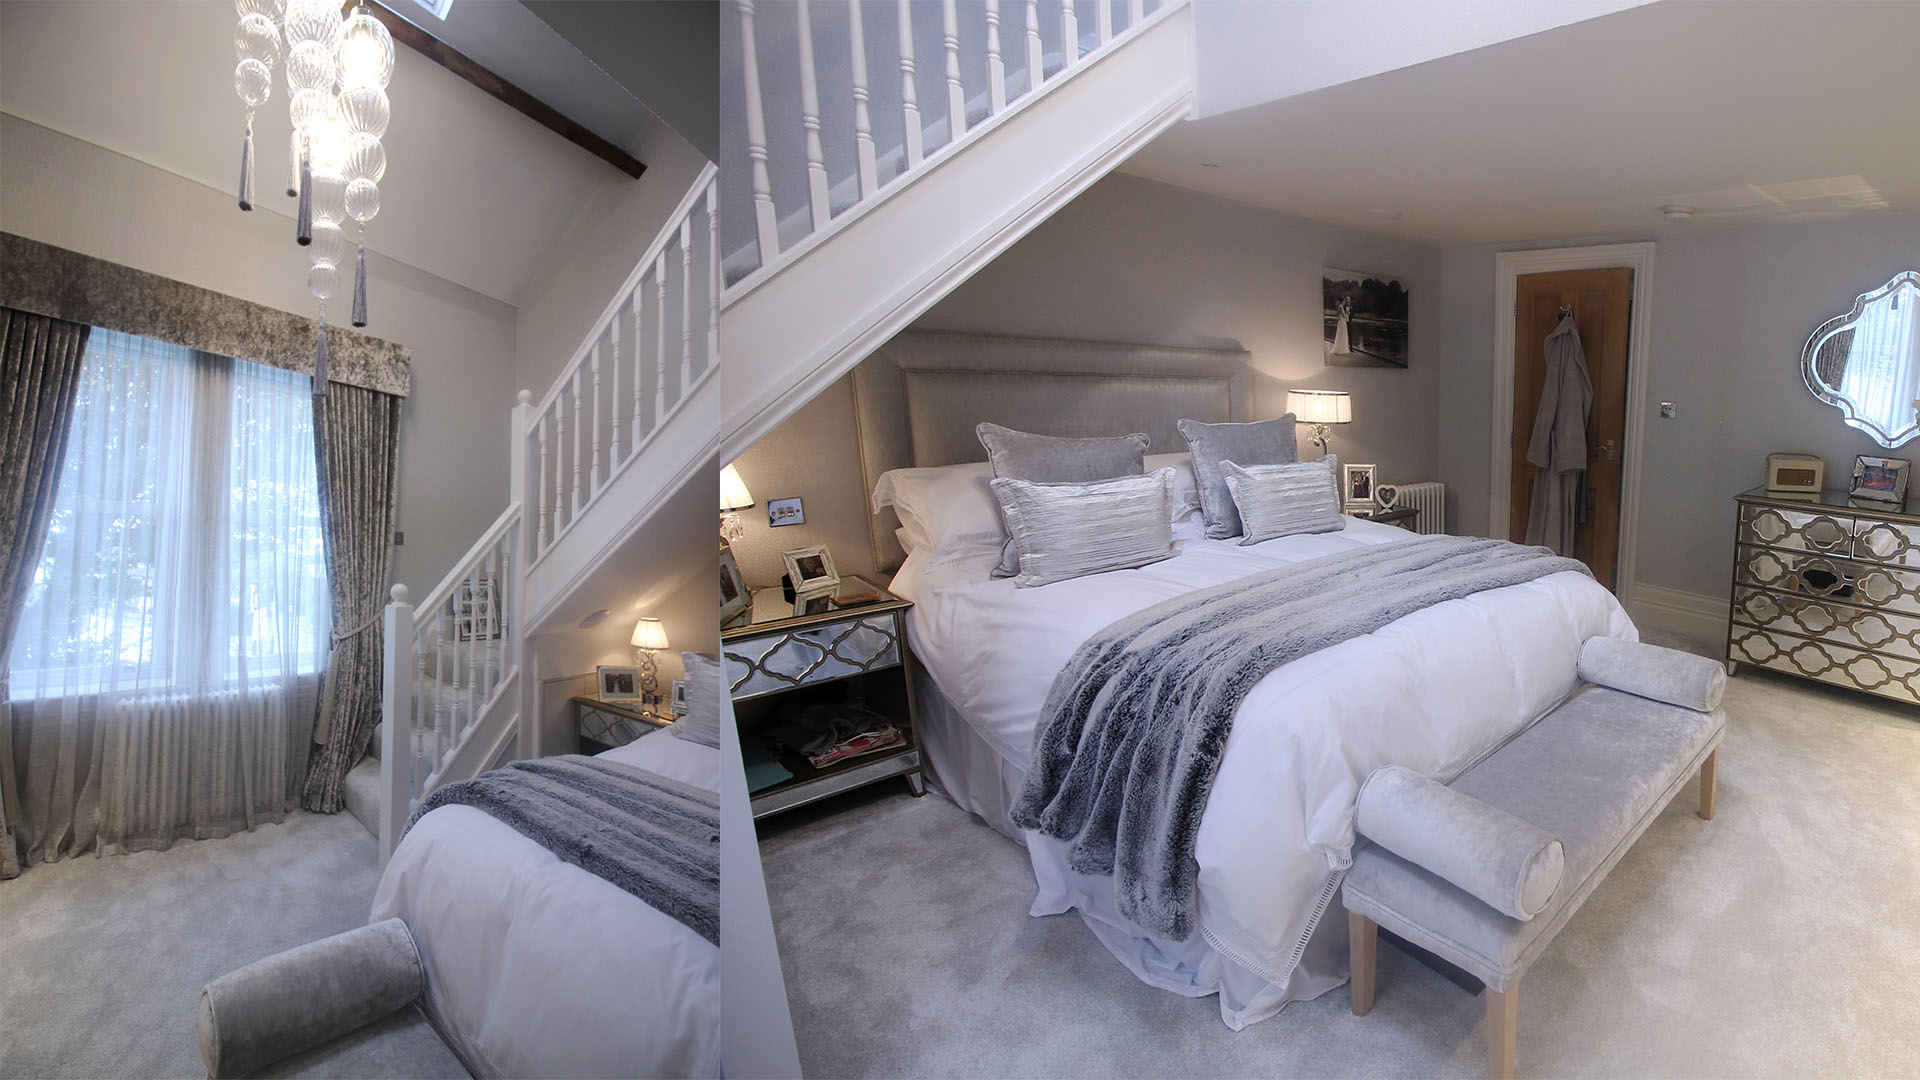 Master bedroom interior design Leeds